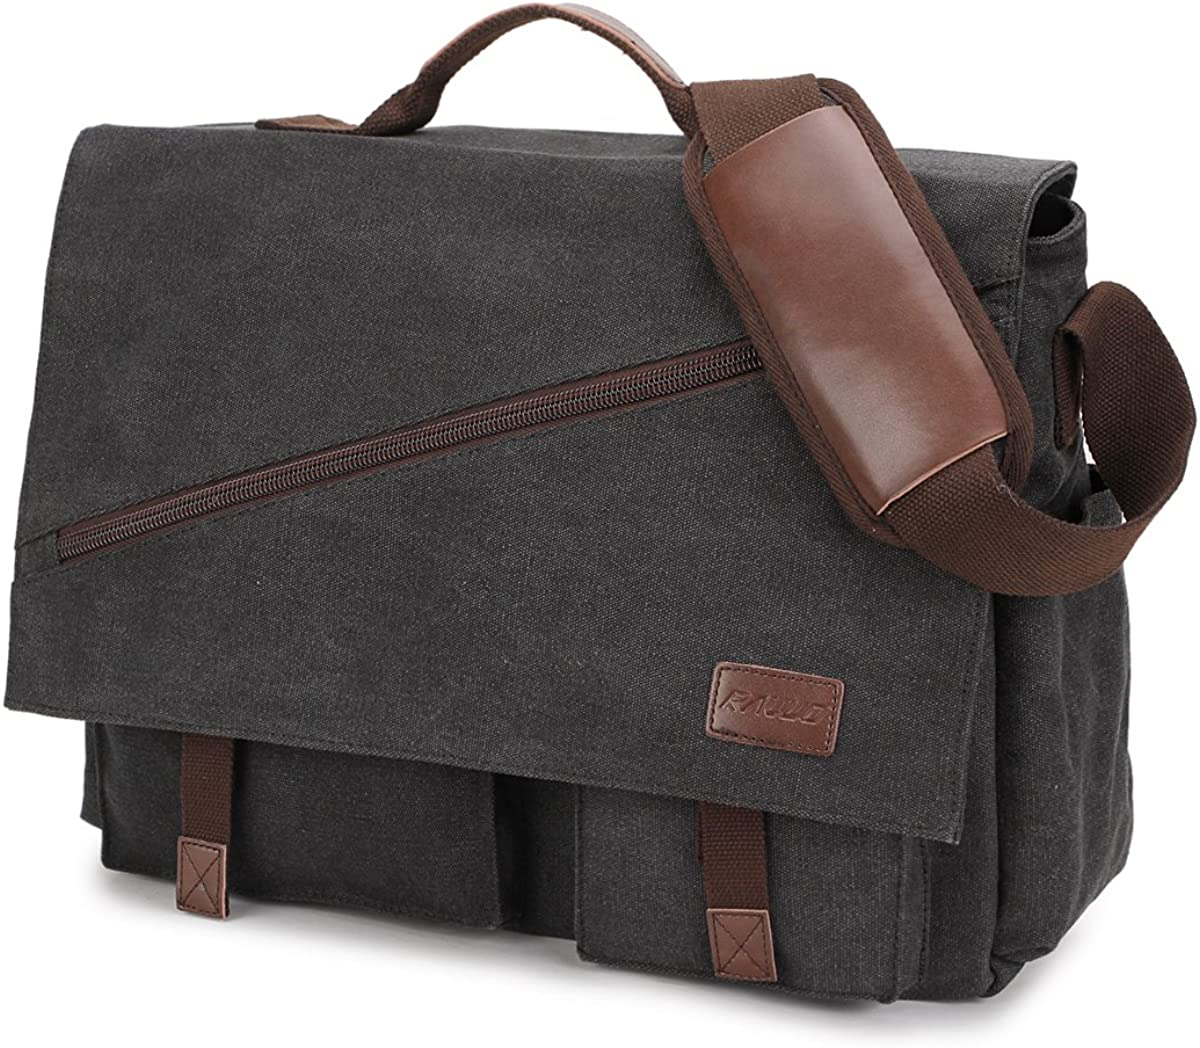 Top 9 Mens Laptop Bag For 17